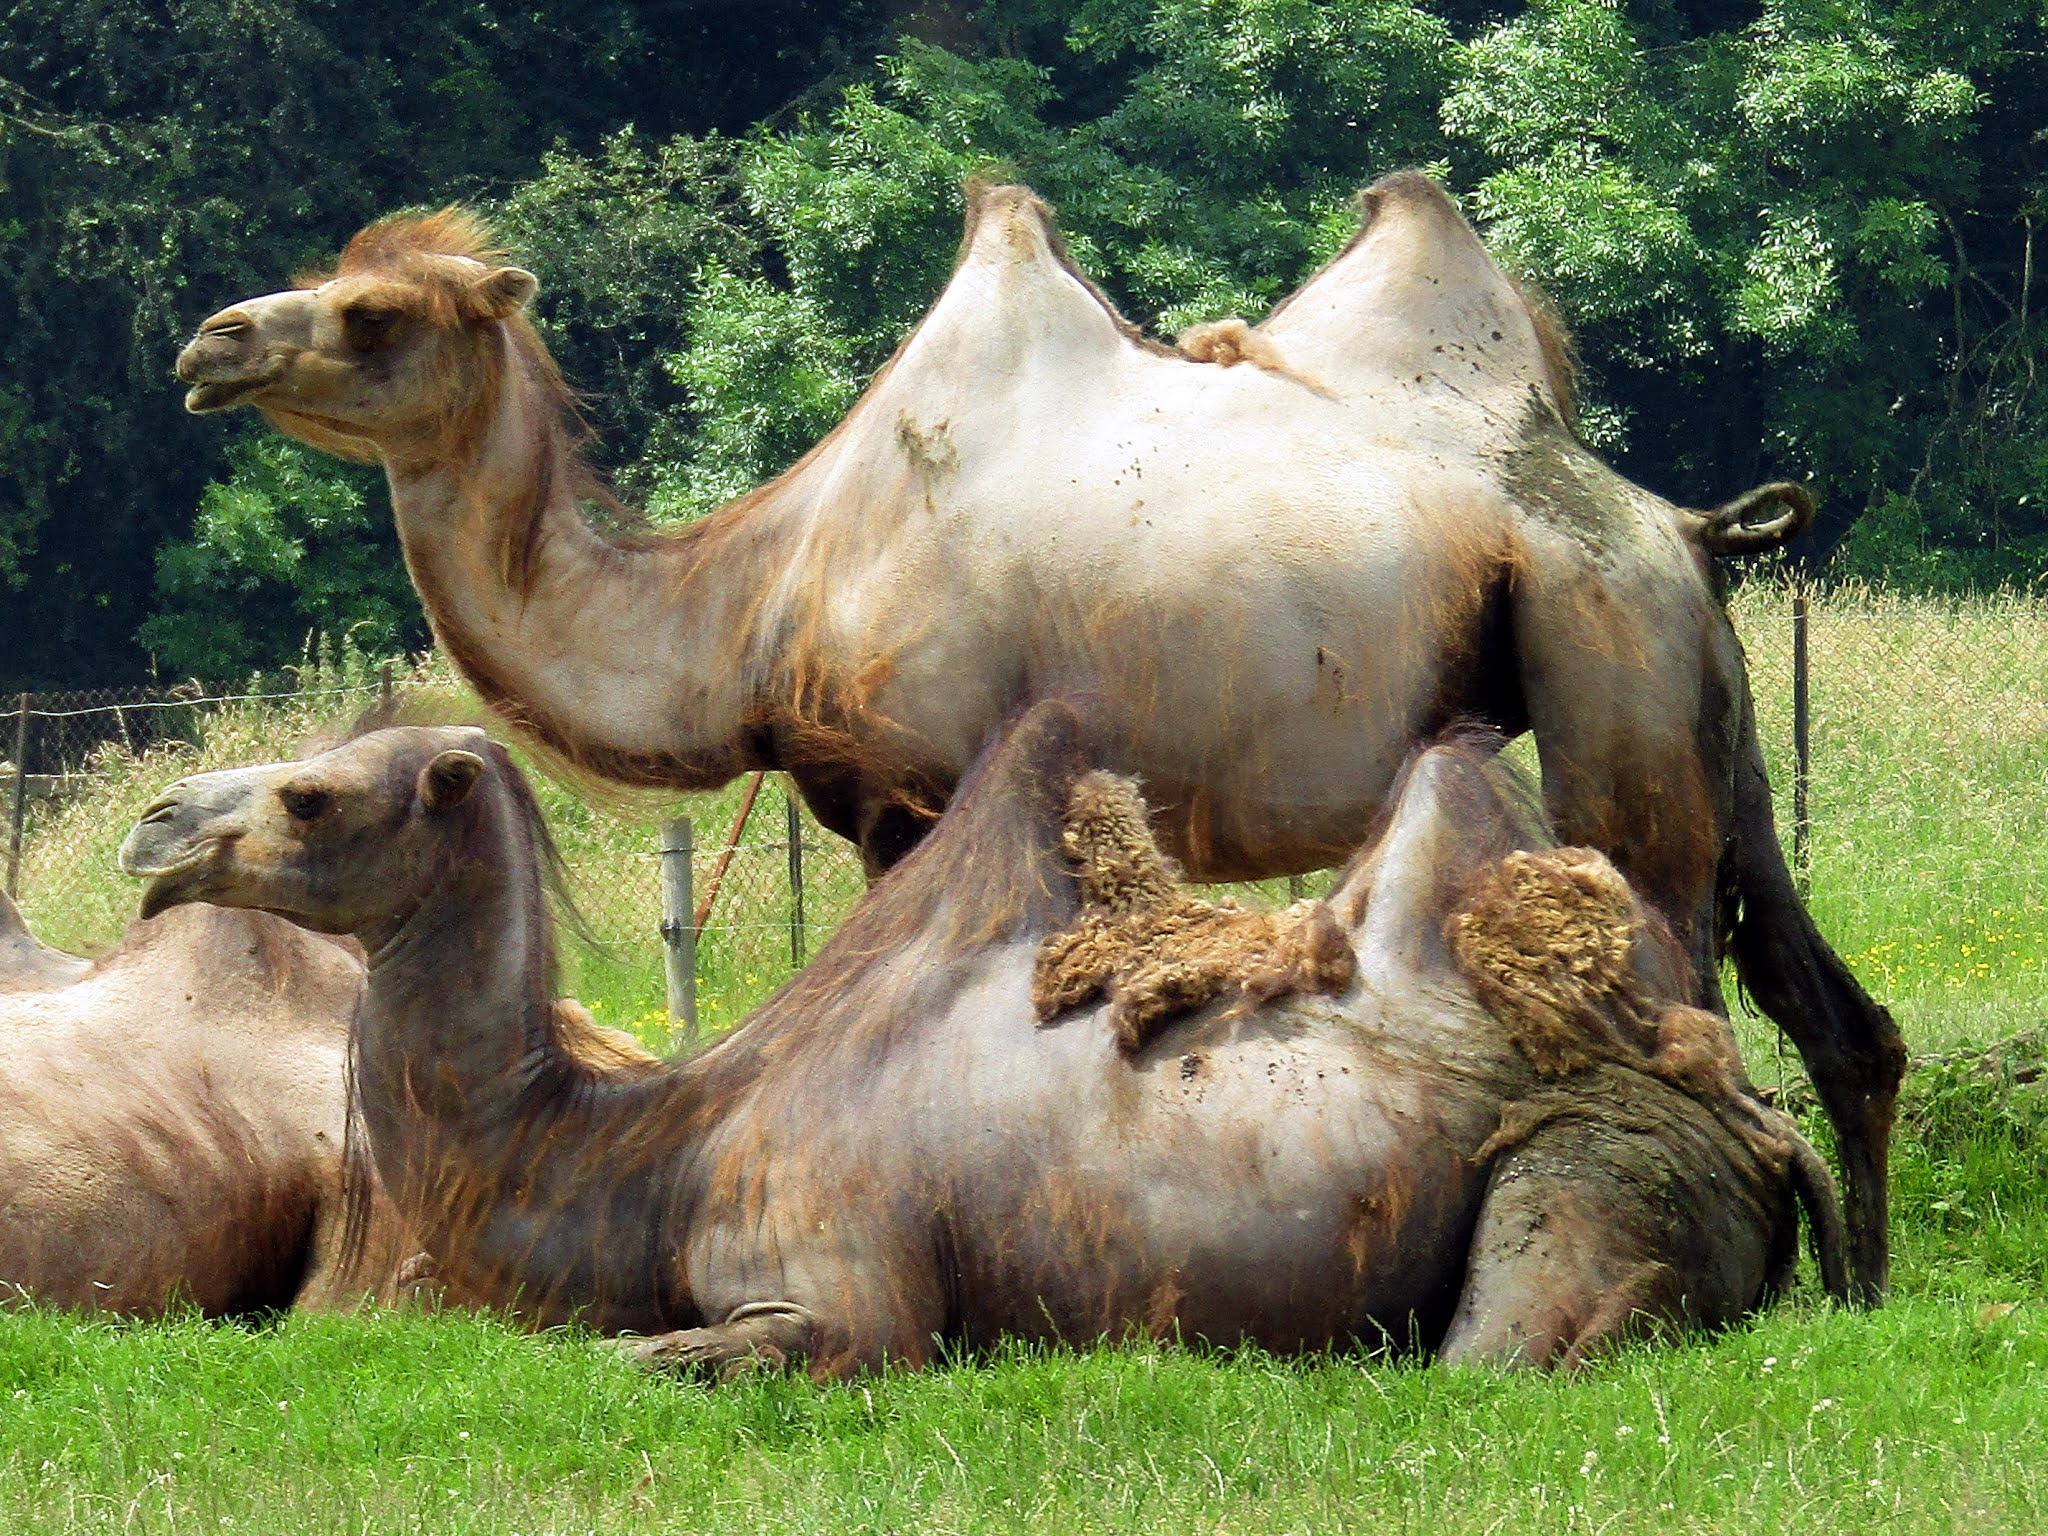 A photo of two Bactrian camels at Whipsnade Zoo.